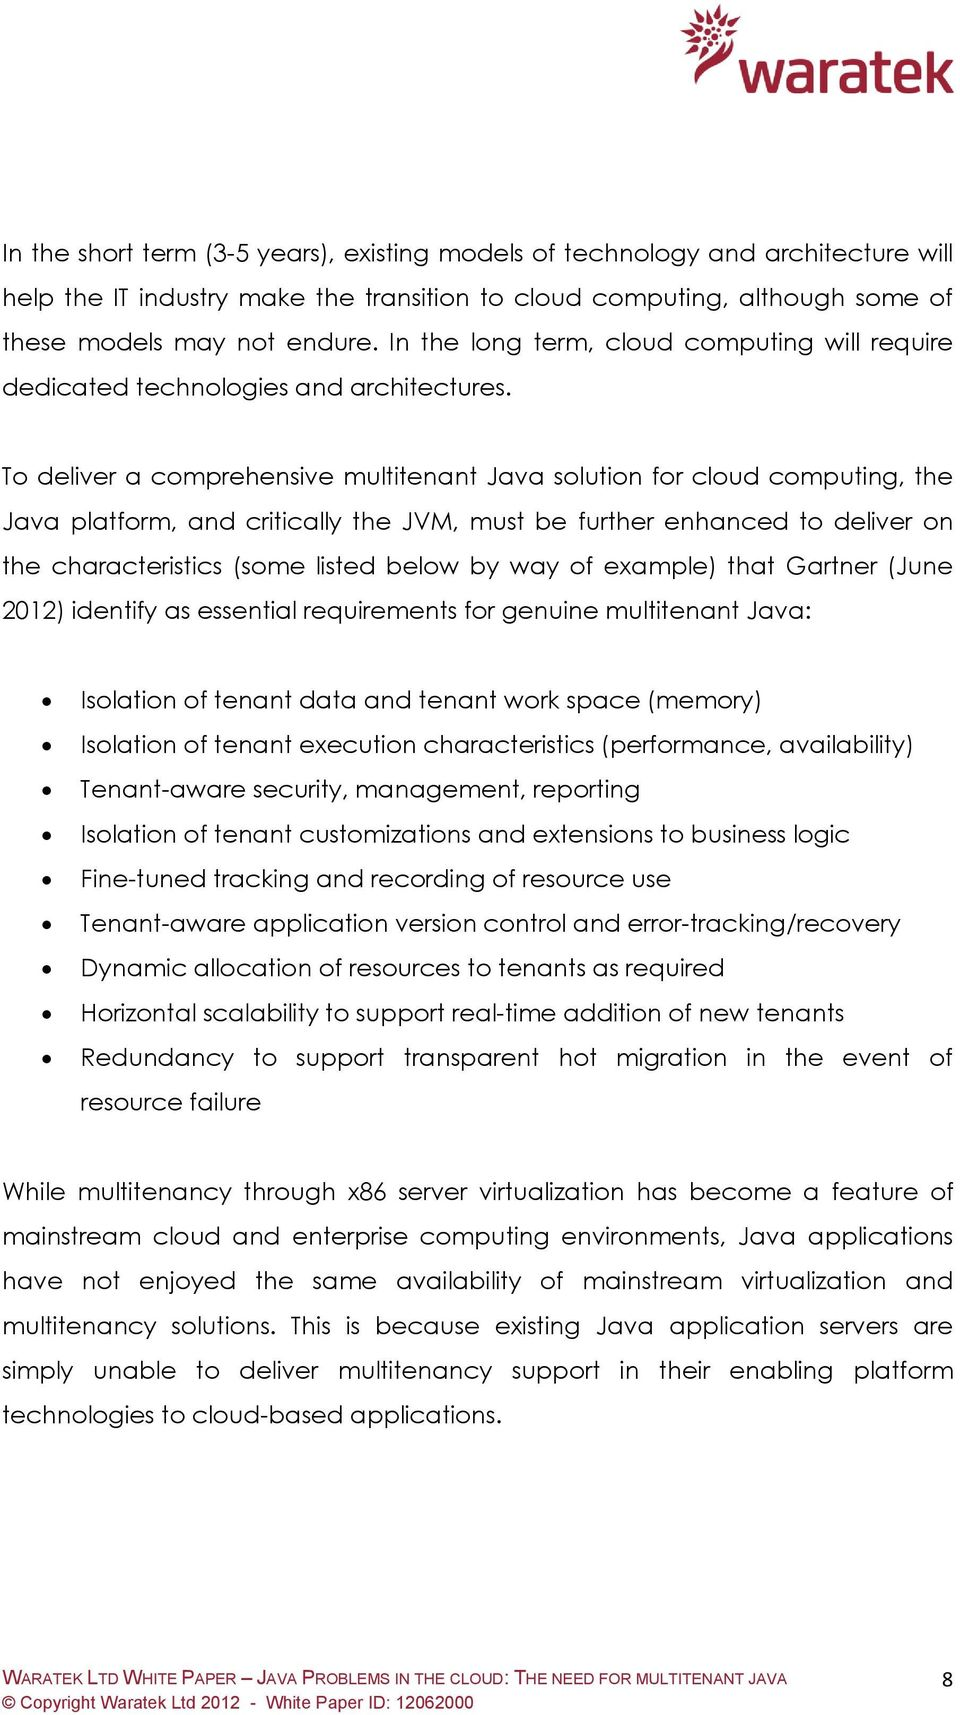 To deliver a comprehensive multitenant Java solution for cloud computing, the Java platform, and critically the JVM, must be further enhanced to deliver on the characteristics (some listed below by